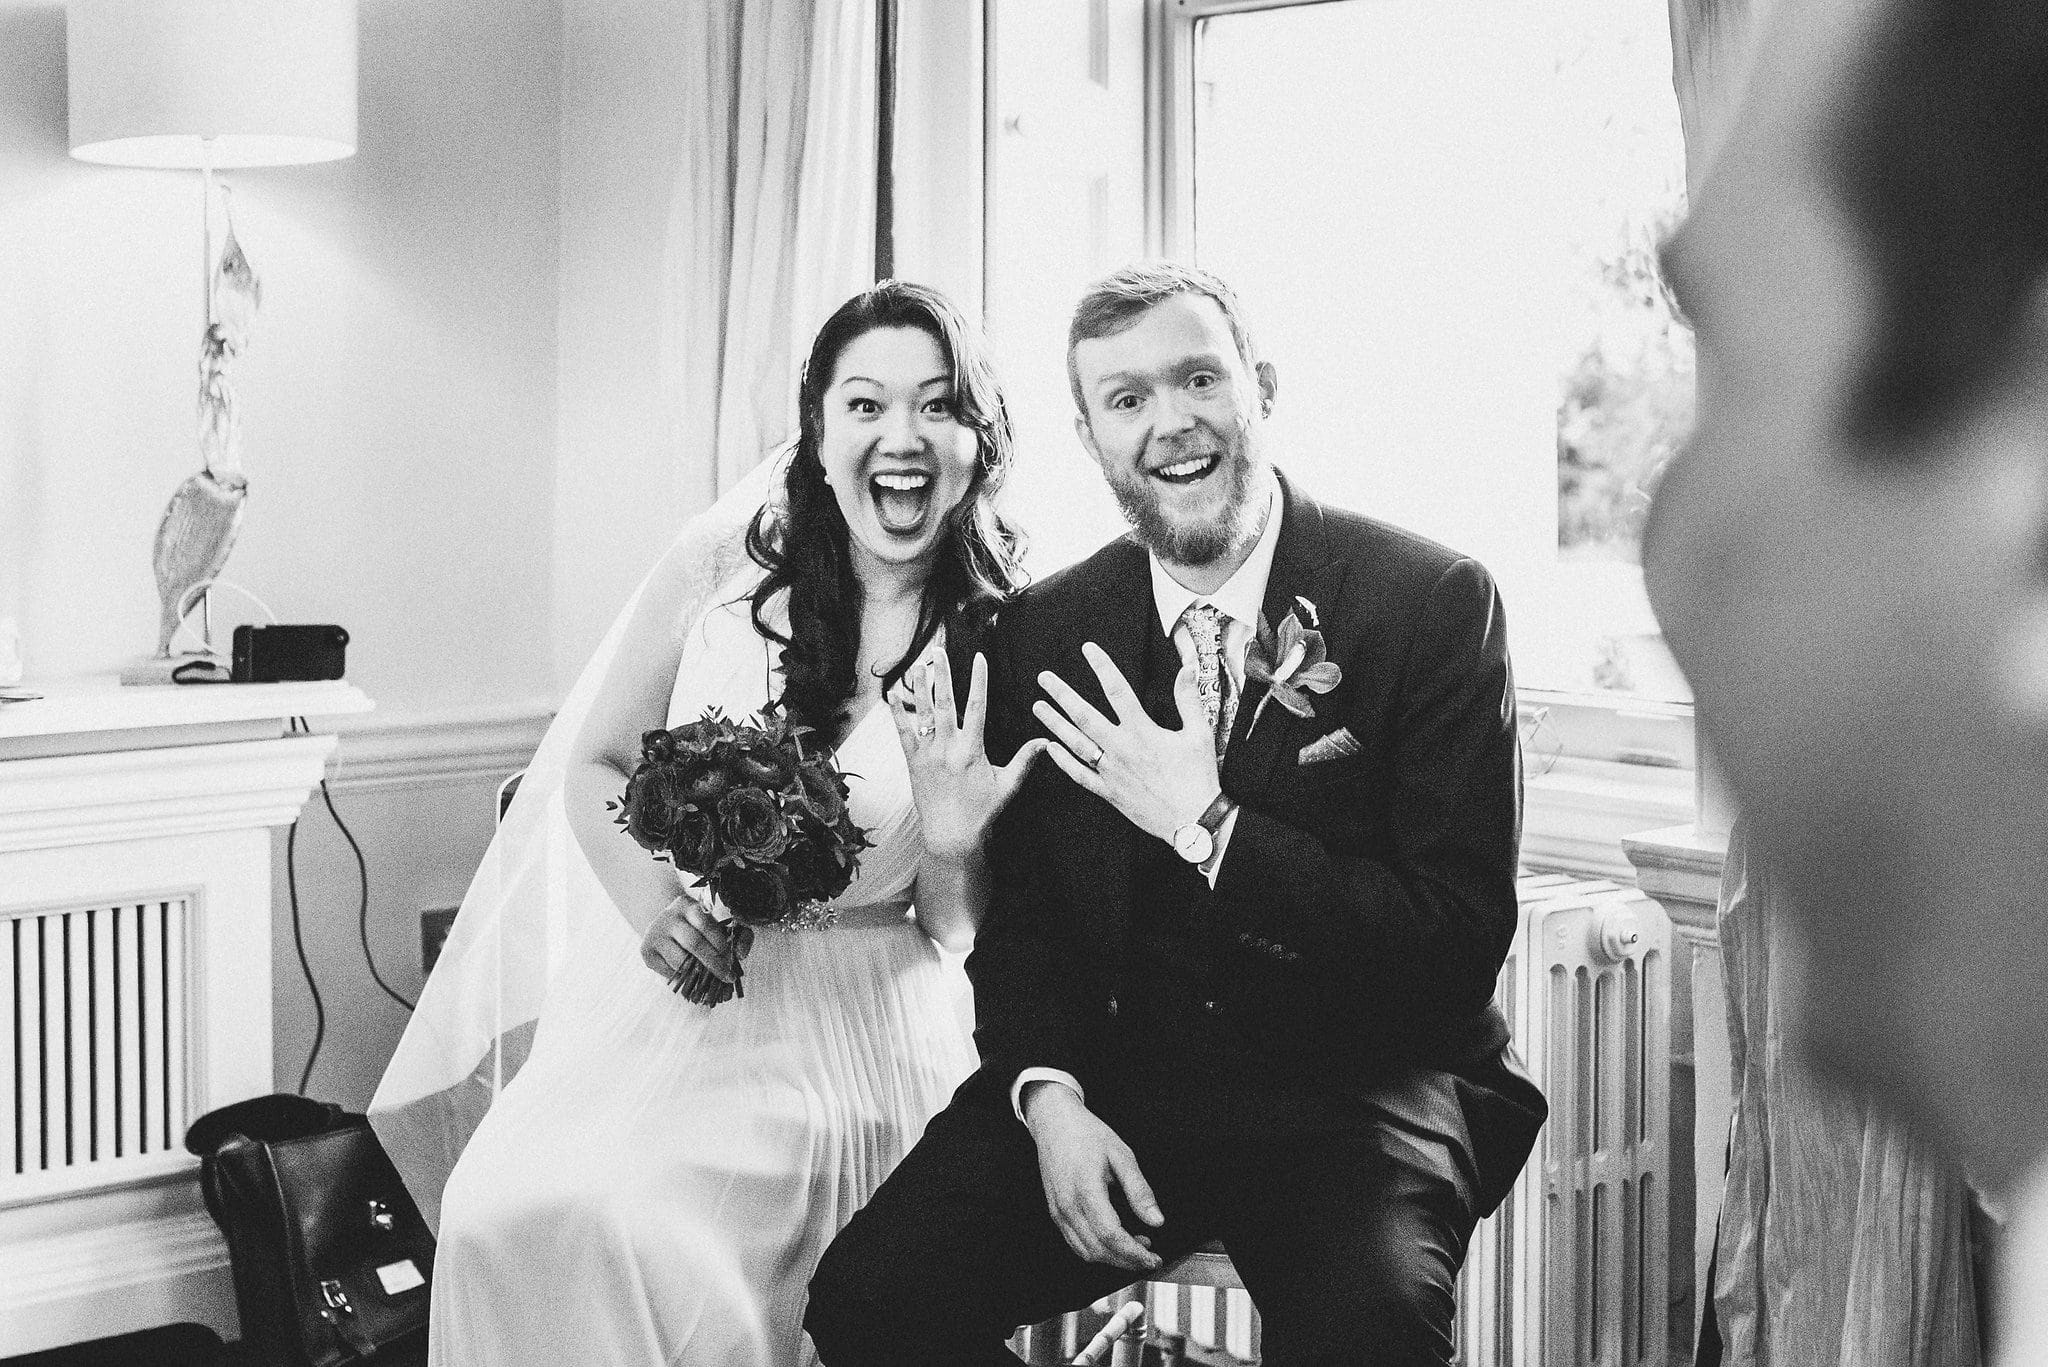 Newlywed bride and groom grin widely and show off their wedding rings